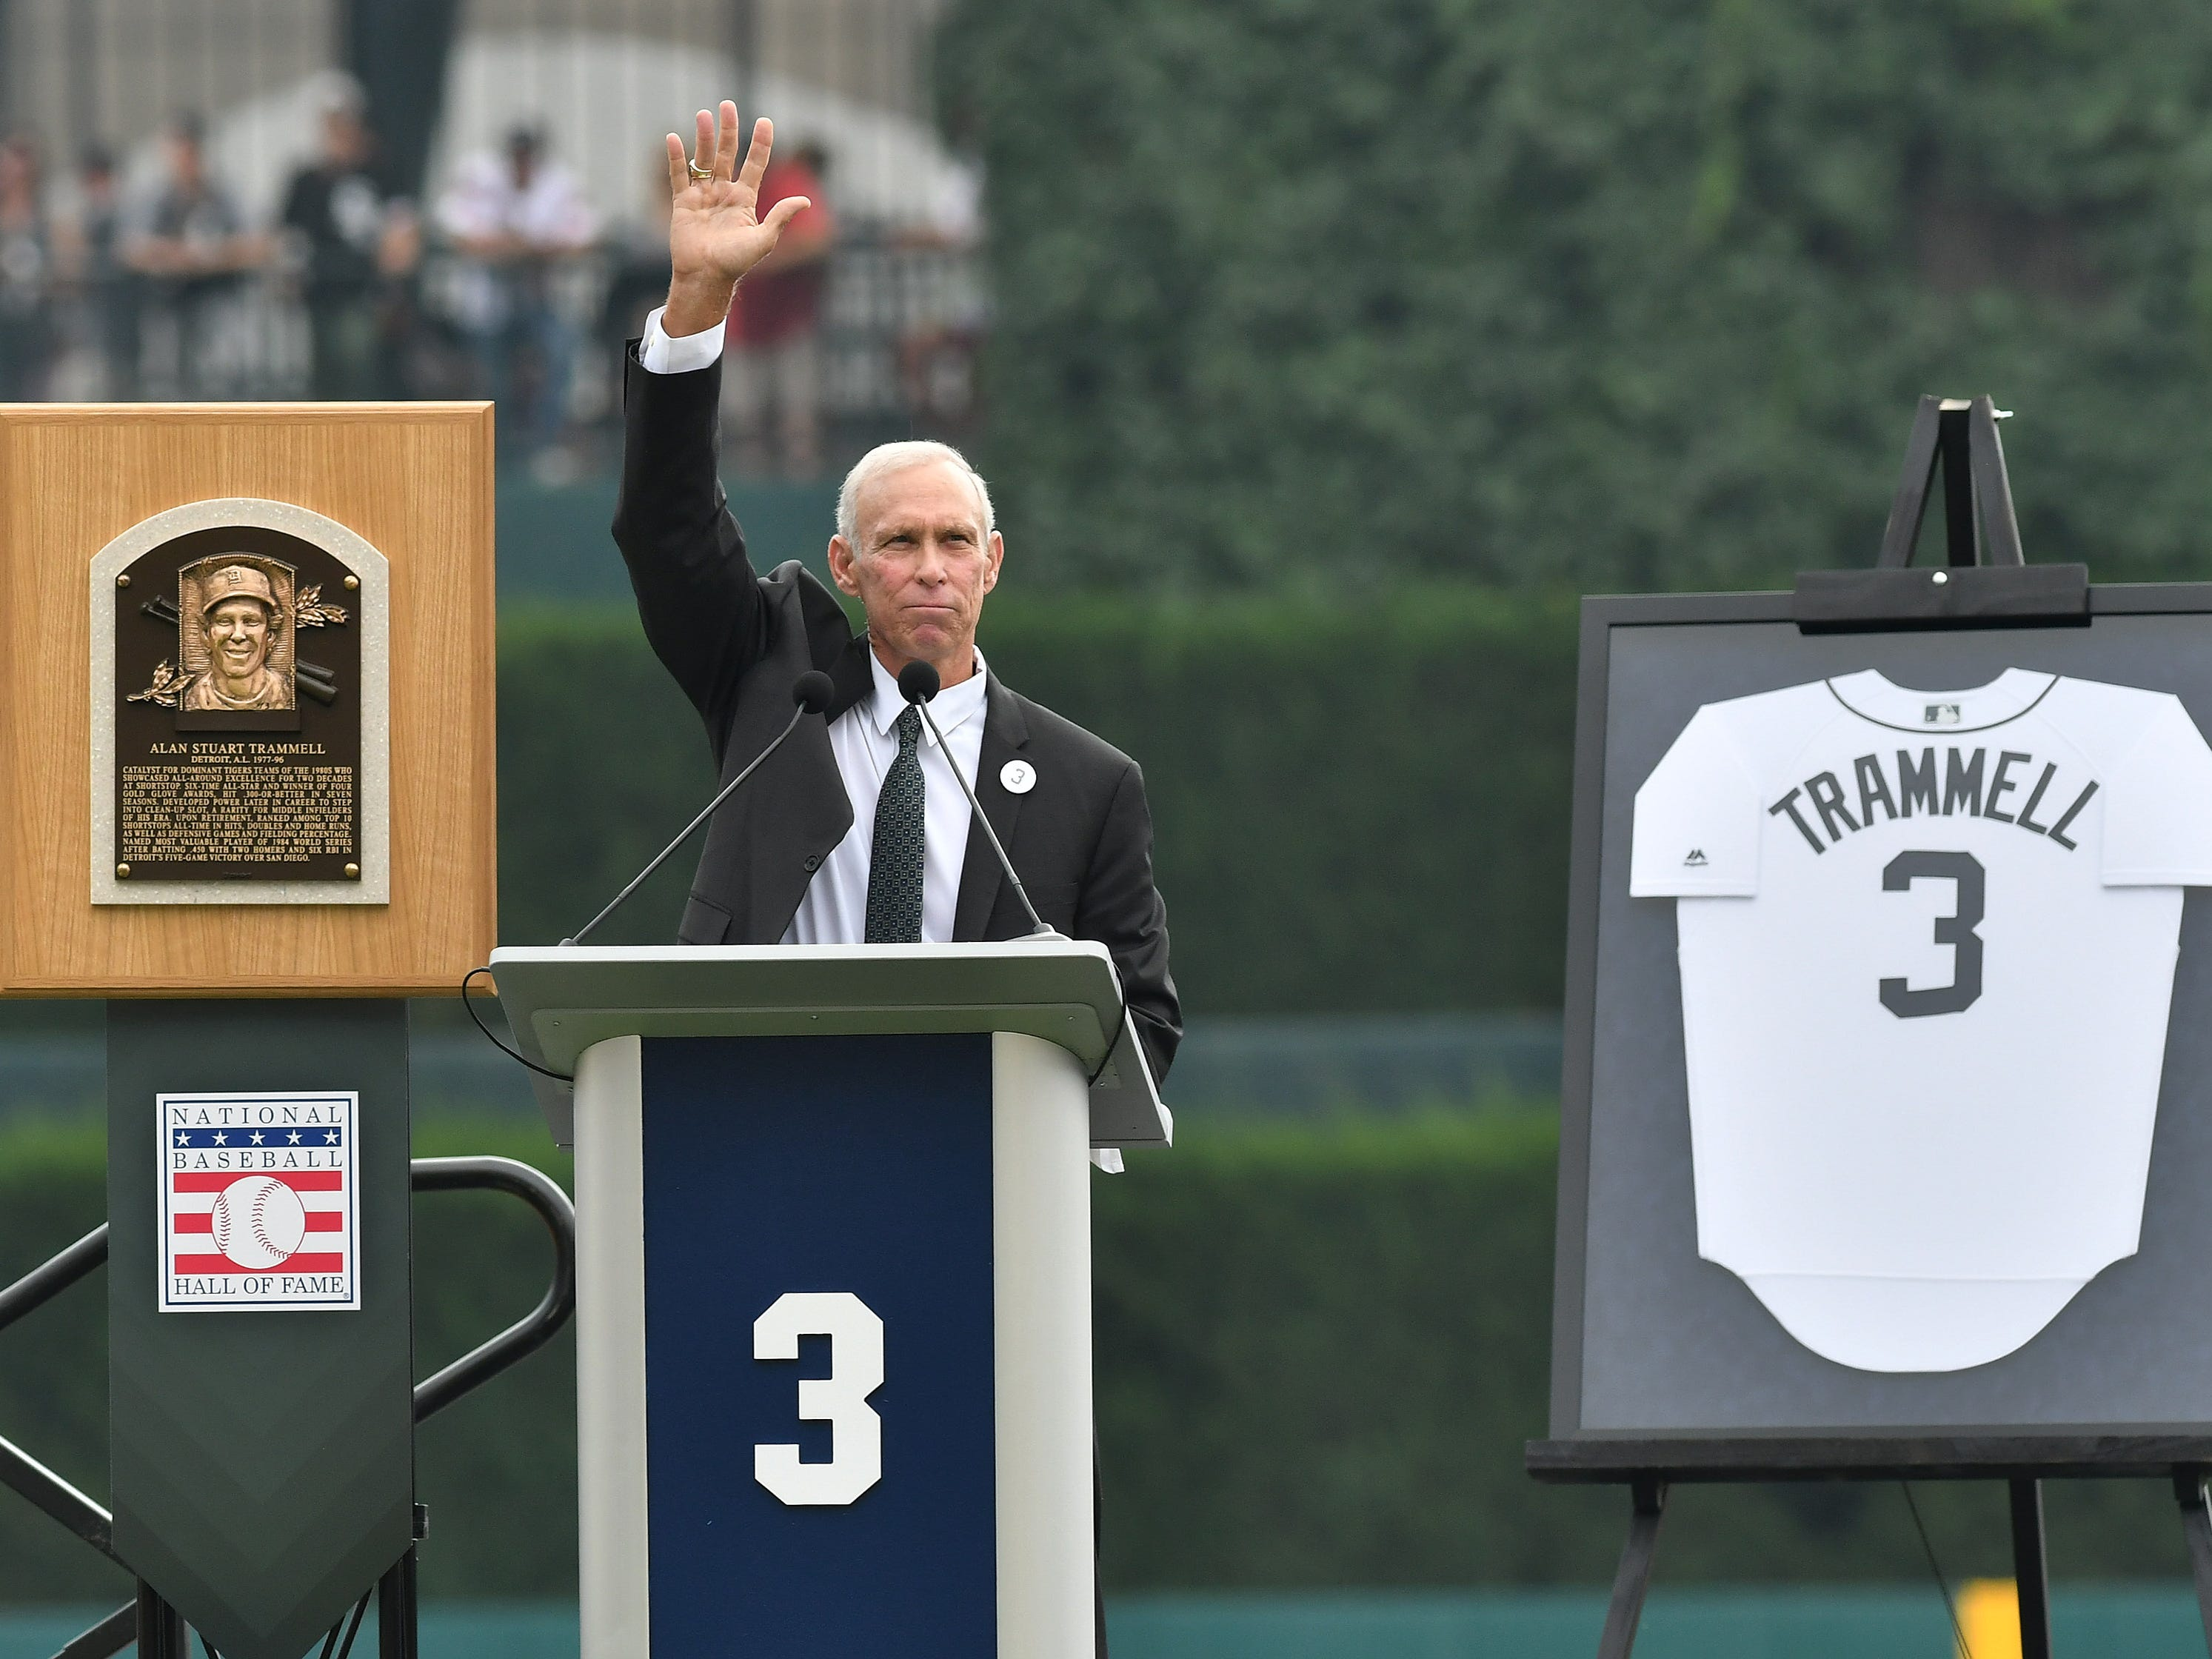 Between his Hall of Fame plaque and his No 3 jersey, Alan Trammell waves to the crowd while he speaks during a special pregame ceremony to retire his number.